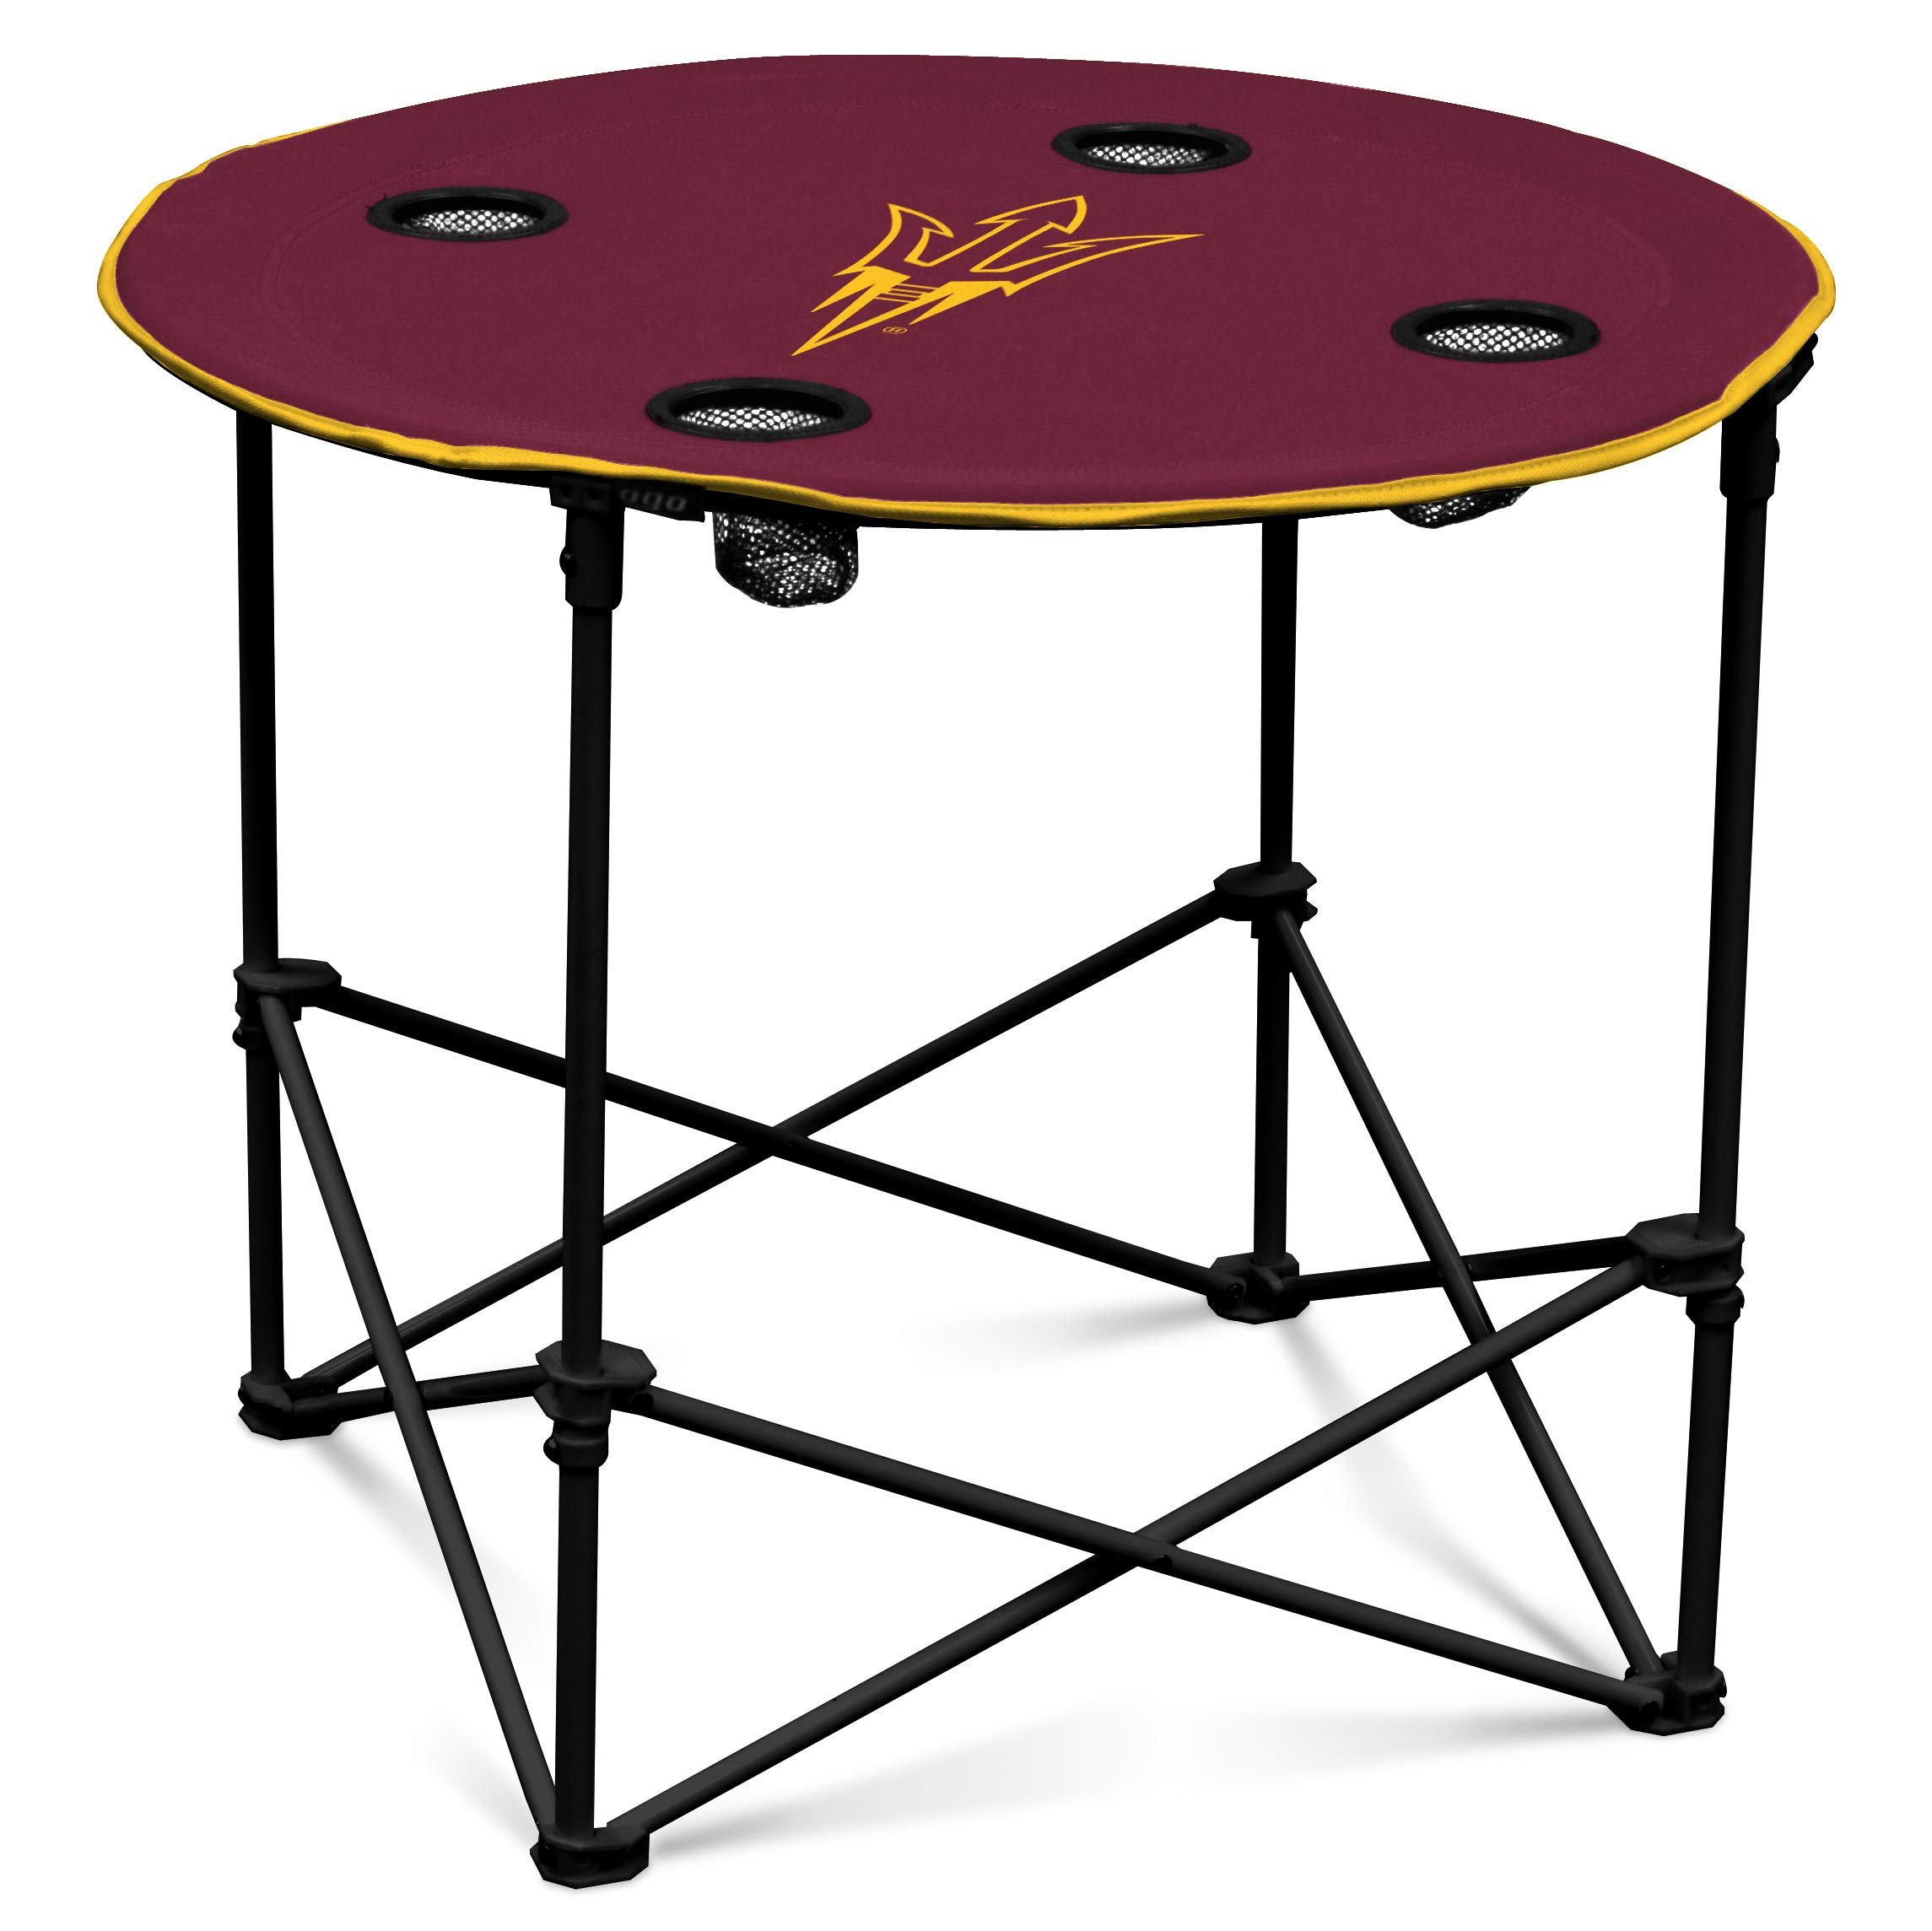 Arizona State Sun Devils Collapsible Round Table with 4 Cup Holders and Carry Bag by Logo Brands